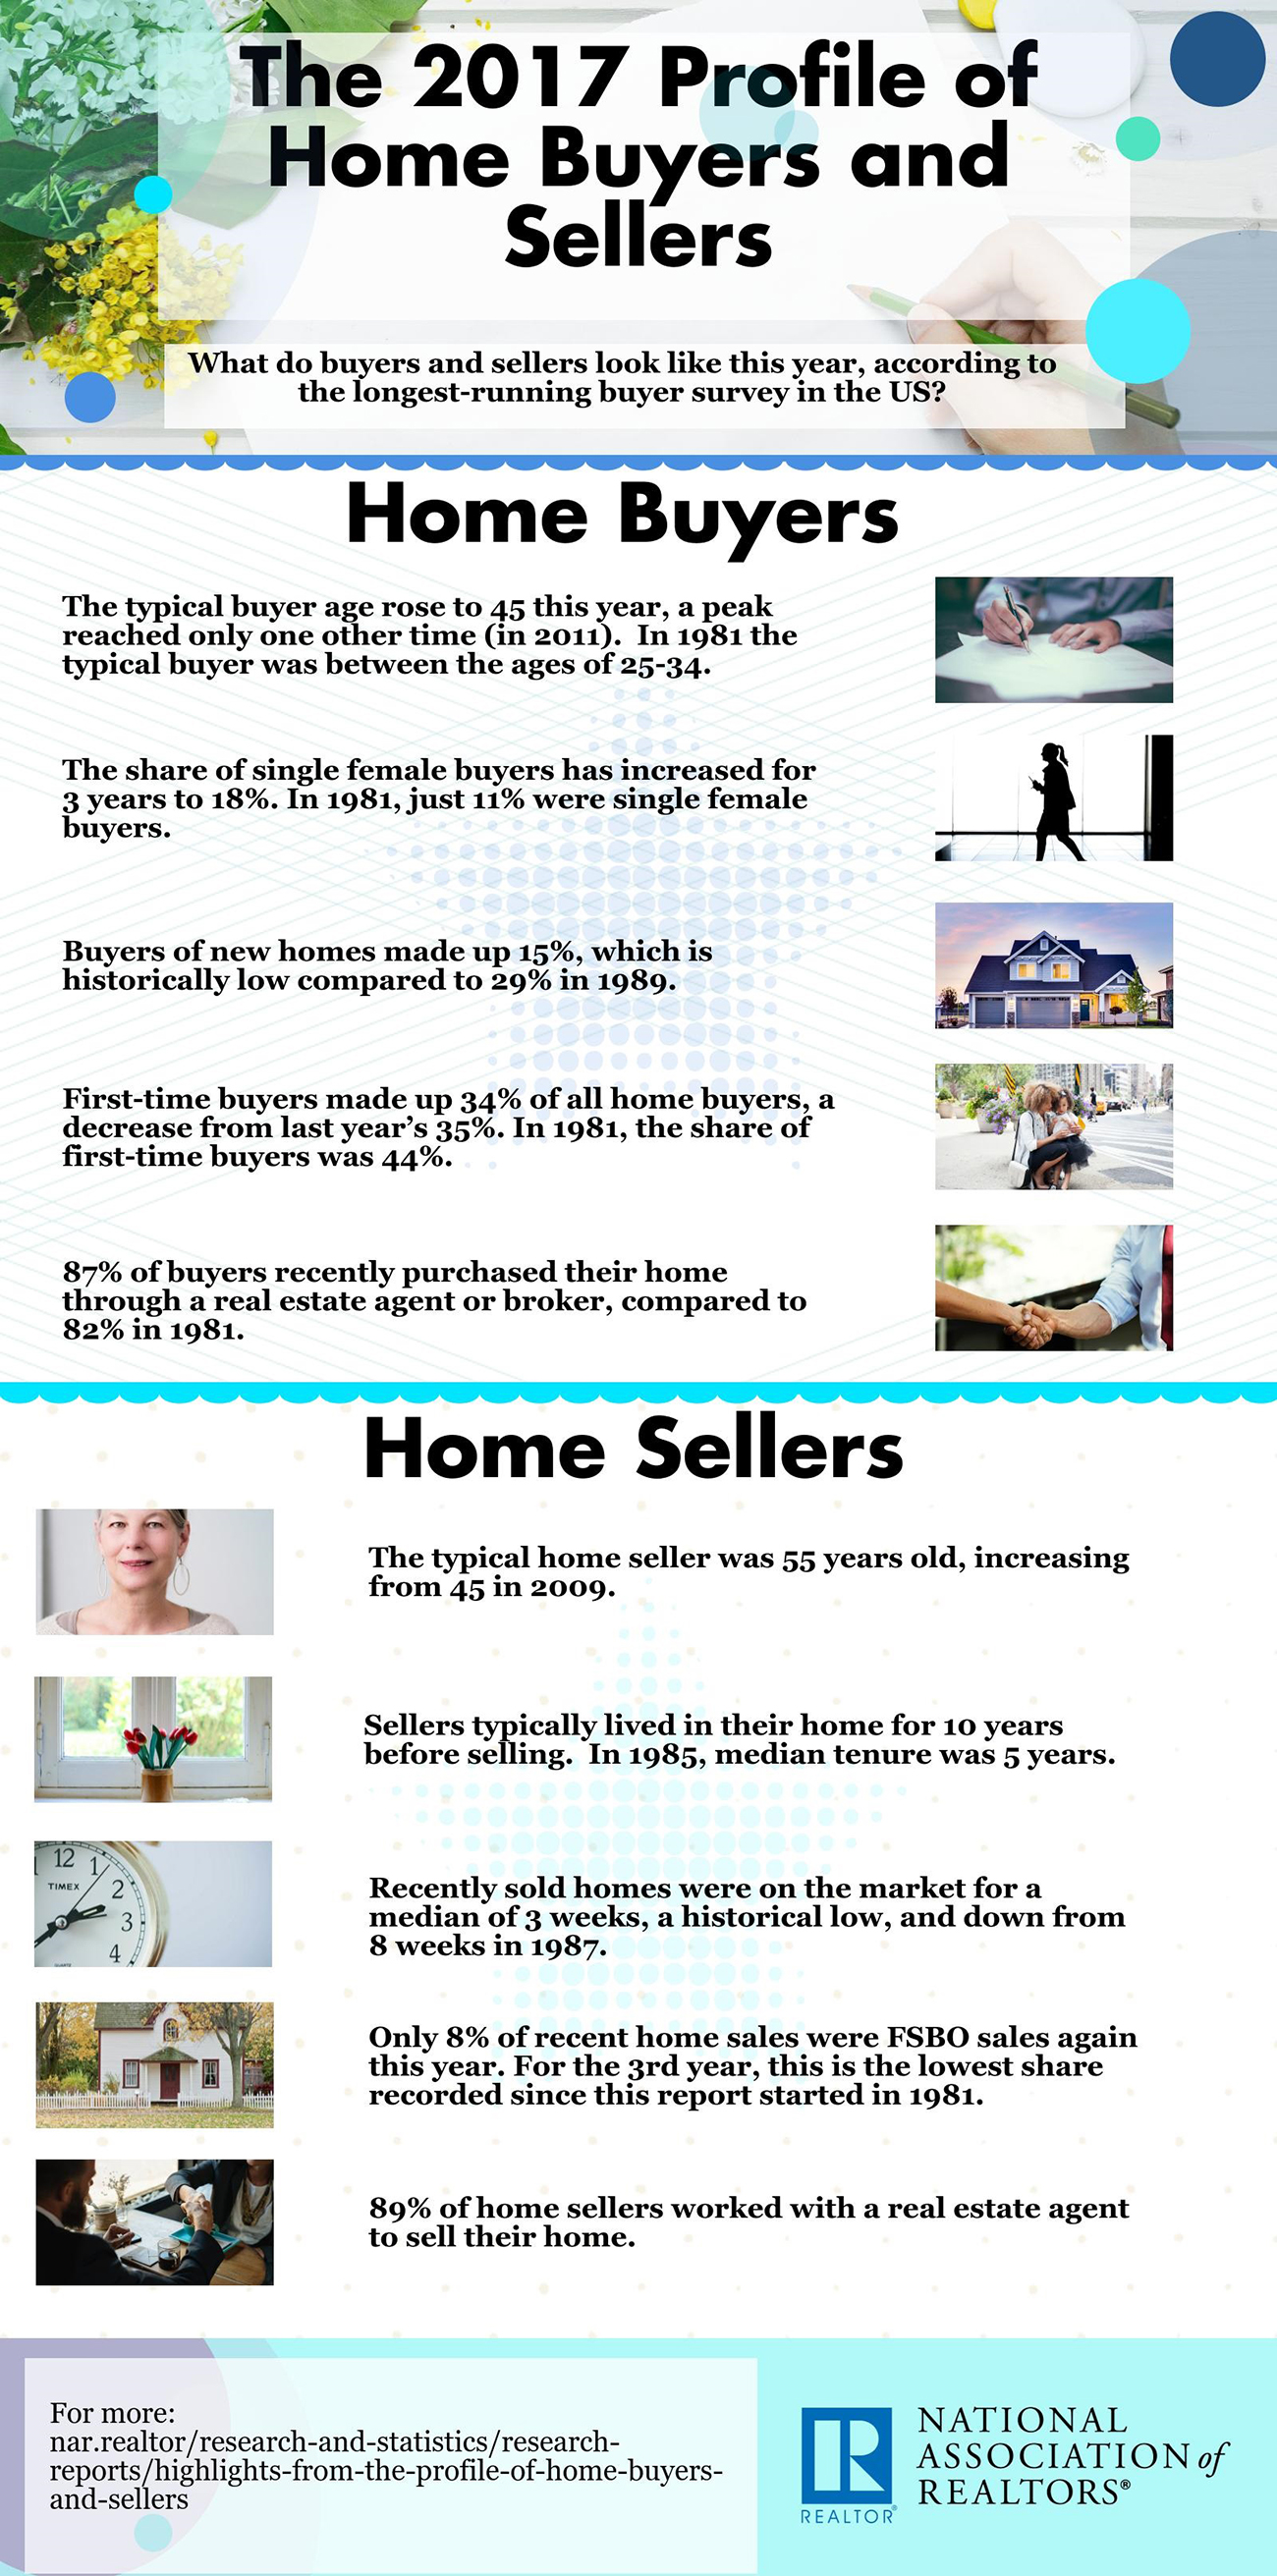 2017 profile of home buyers and sellers